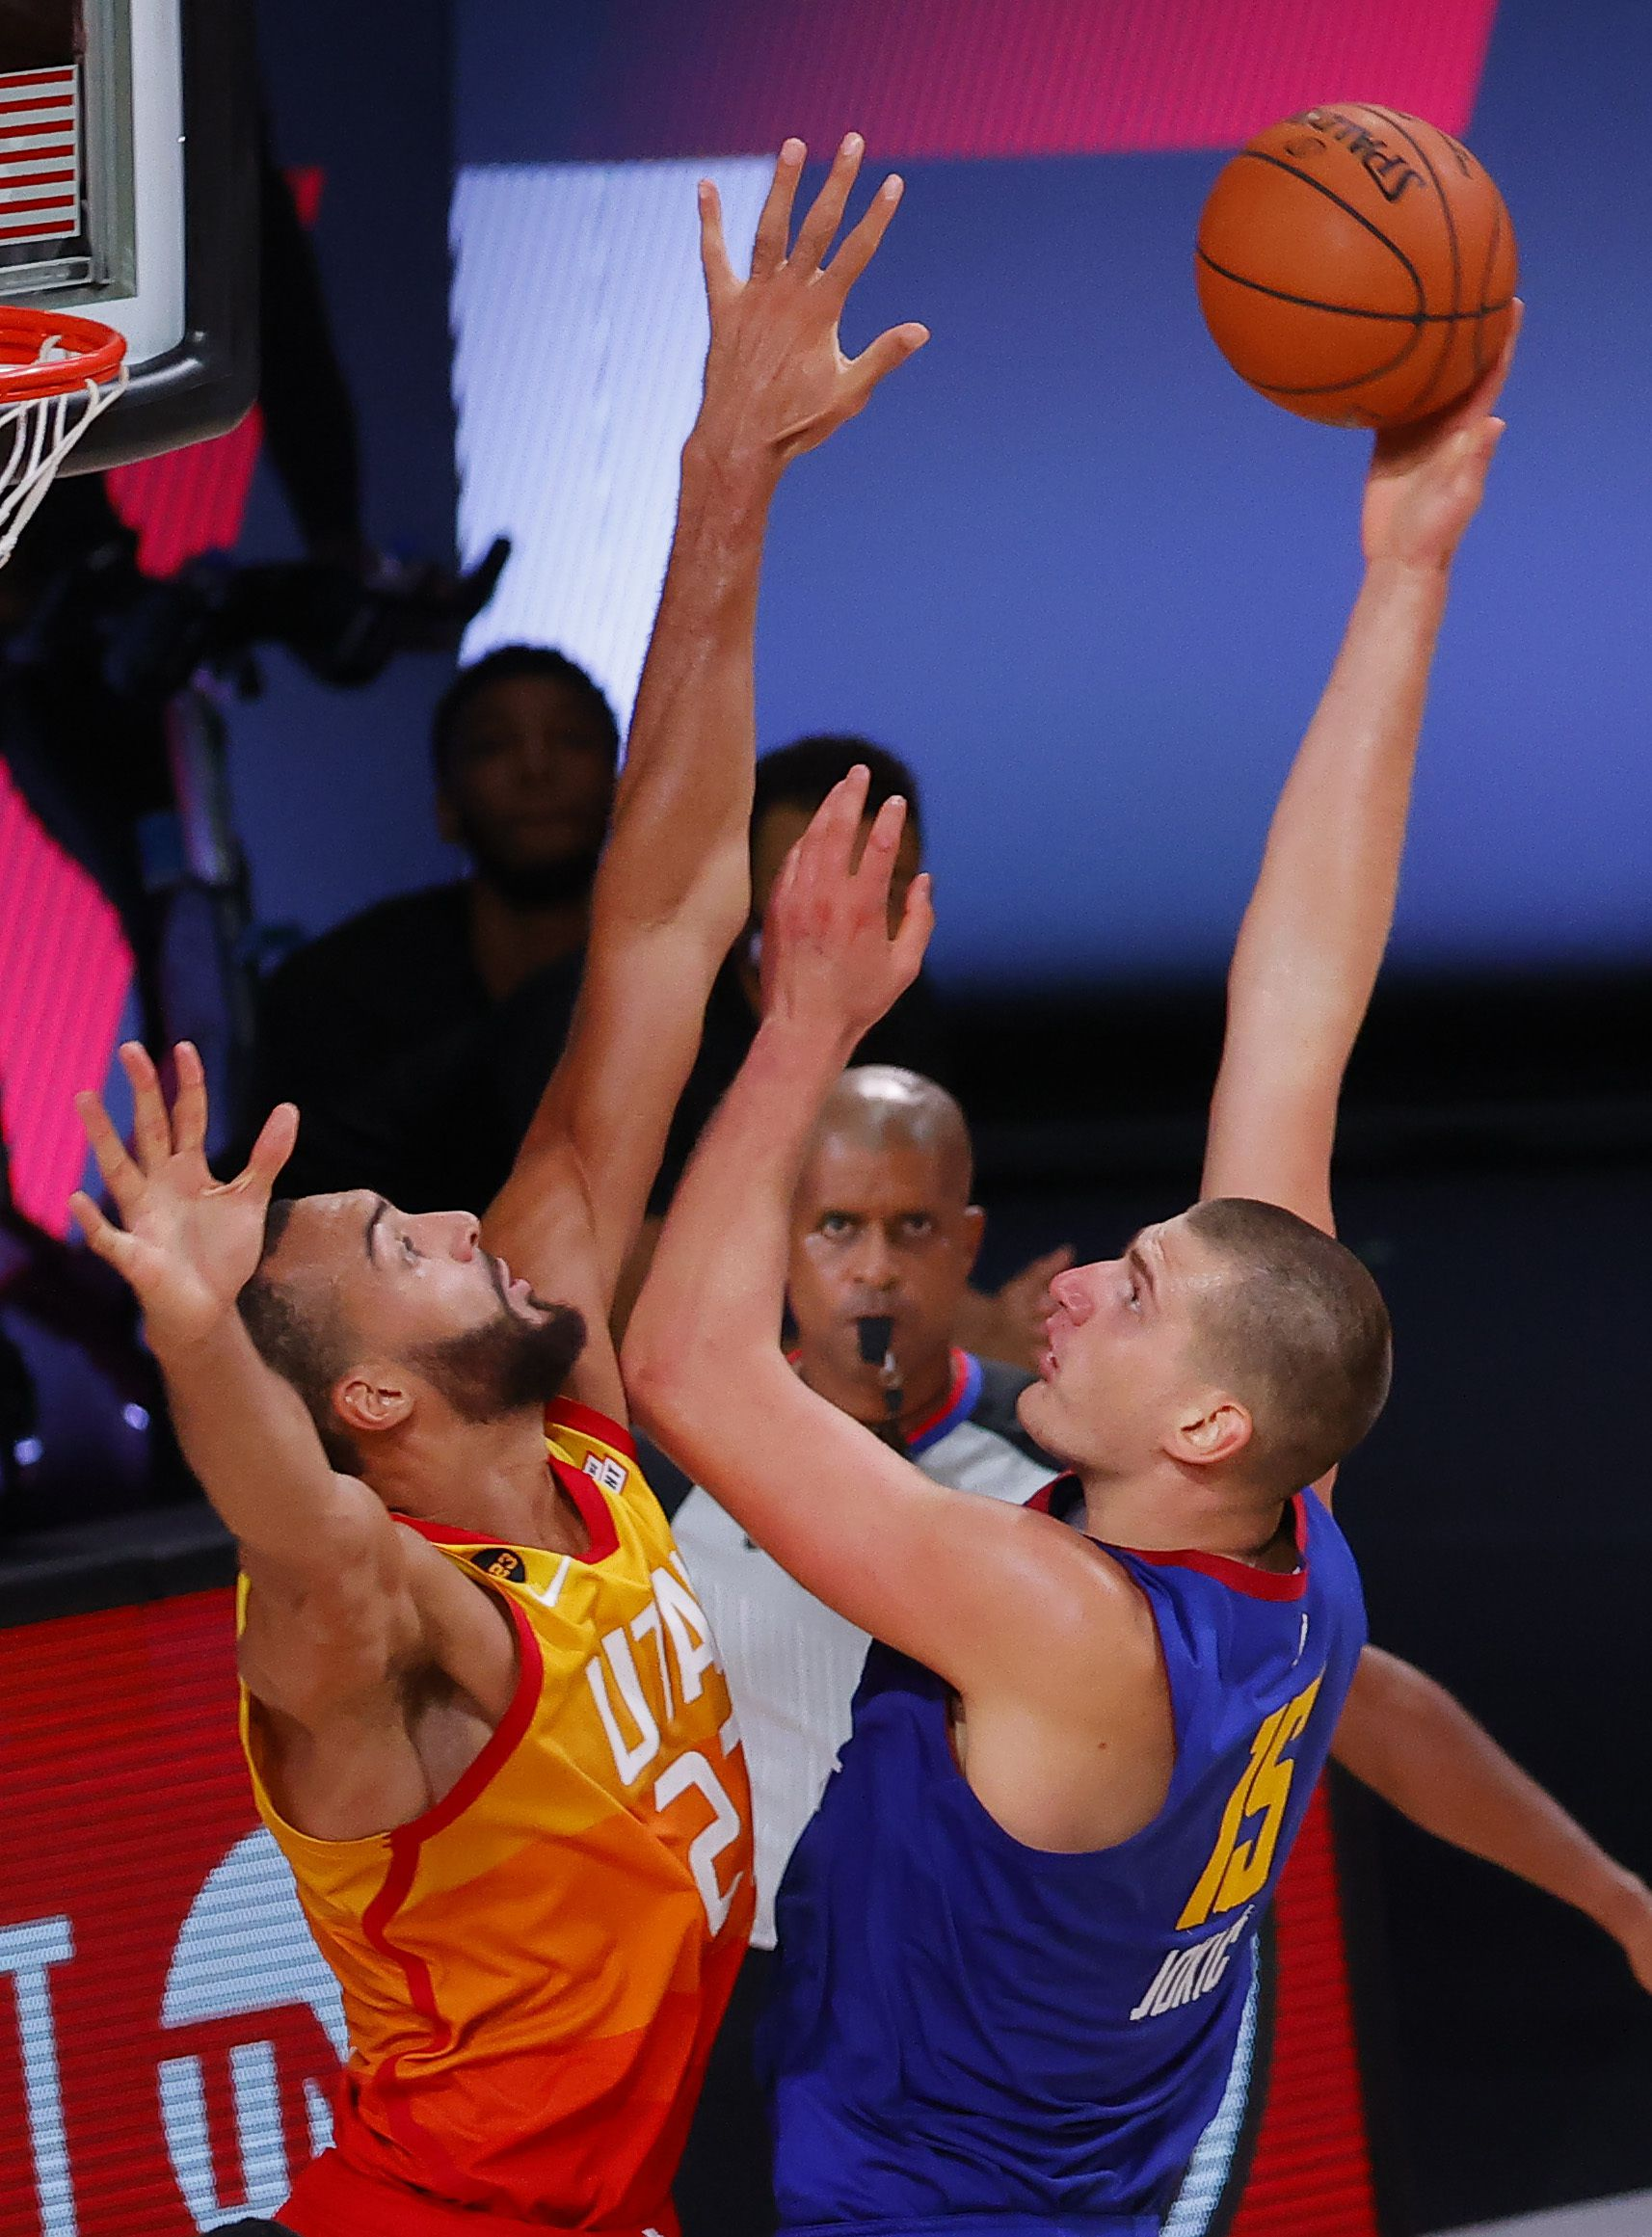 Denver Nuggets' Nikola Jokic, right, goes up for a shot against Utah Jazz's Rudy Gobert during the third quarter of Game 4 of an NBA basketball first-round playoff series, Sunday, Aug. 23, 2020, in Lake Buena Vista, Fla. (Kevin C. Cox/Pool Photo via AP)